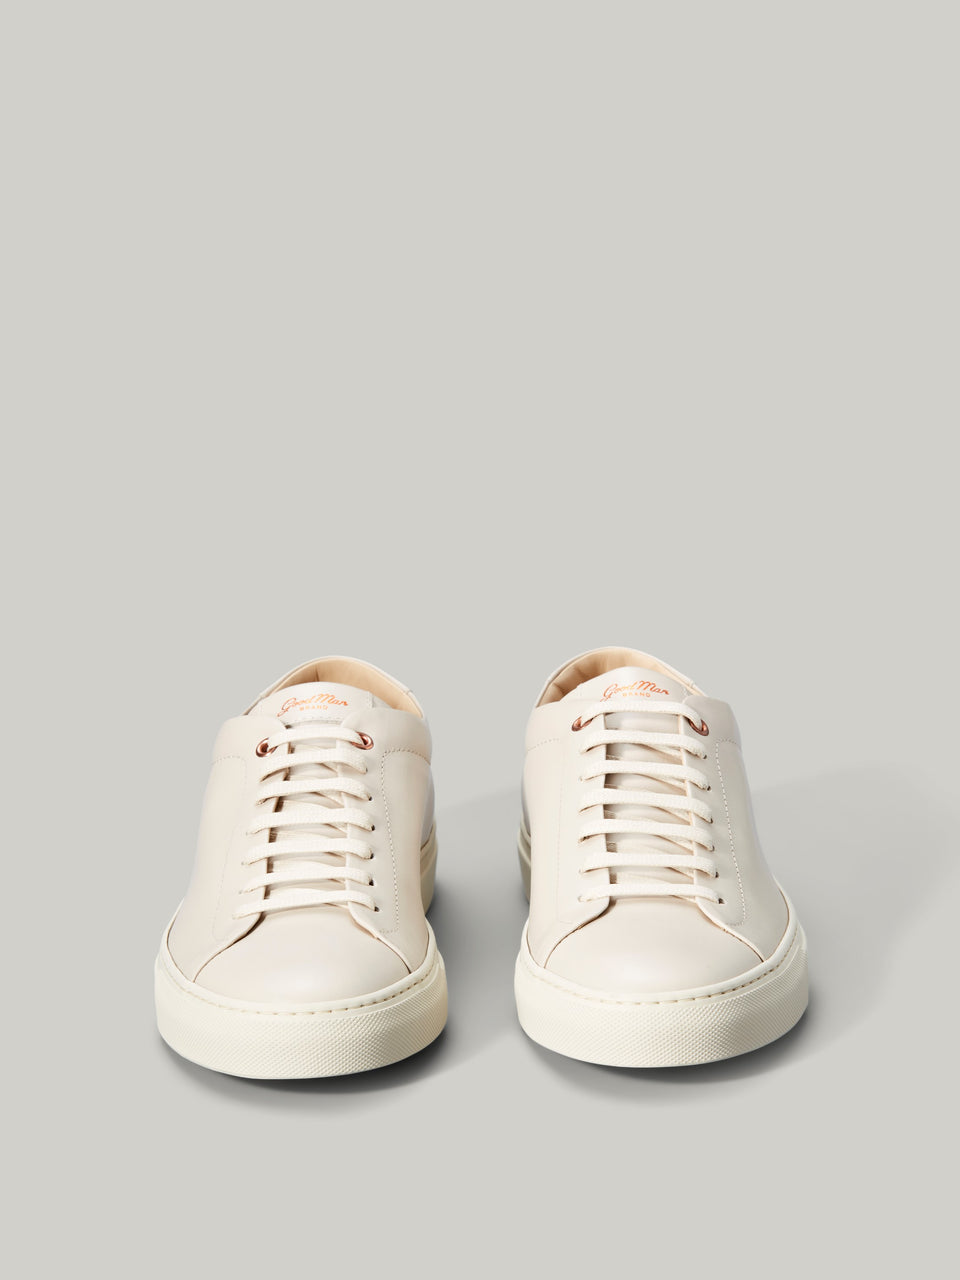 Edge Lo-Top Sneaker - Natural - Good Man Brand - Edge Lo-Top Sneaker - Natural